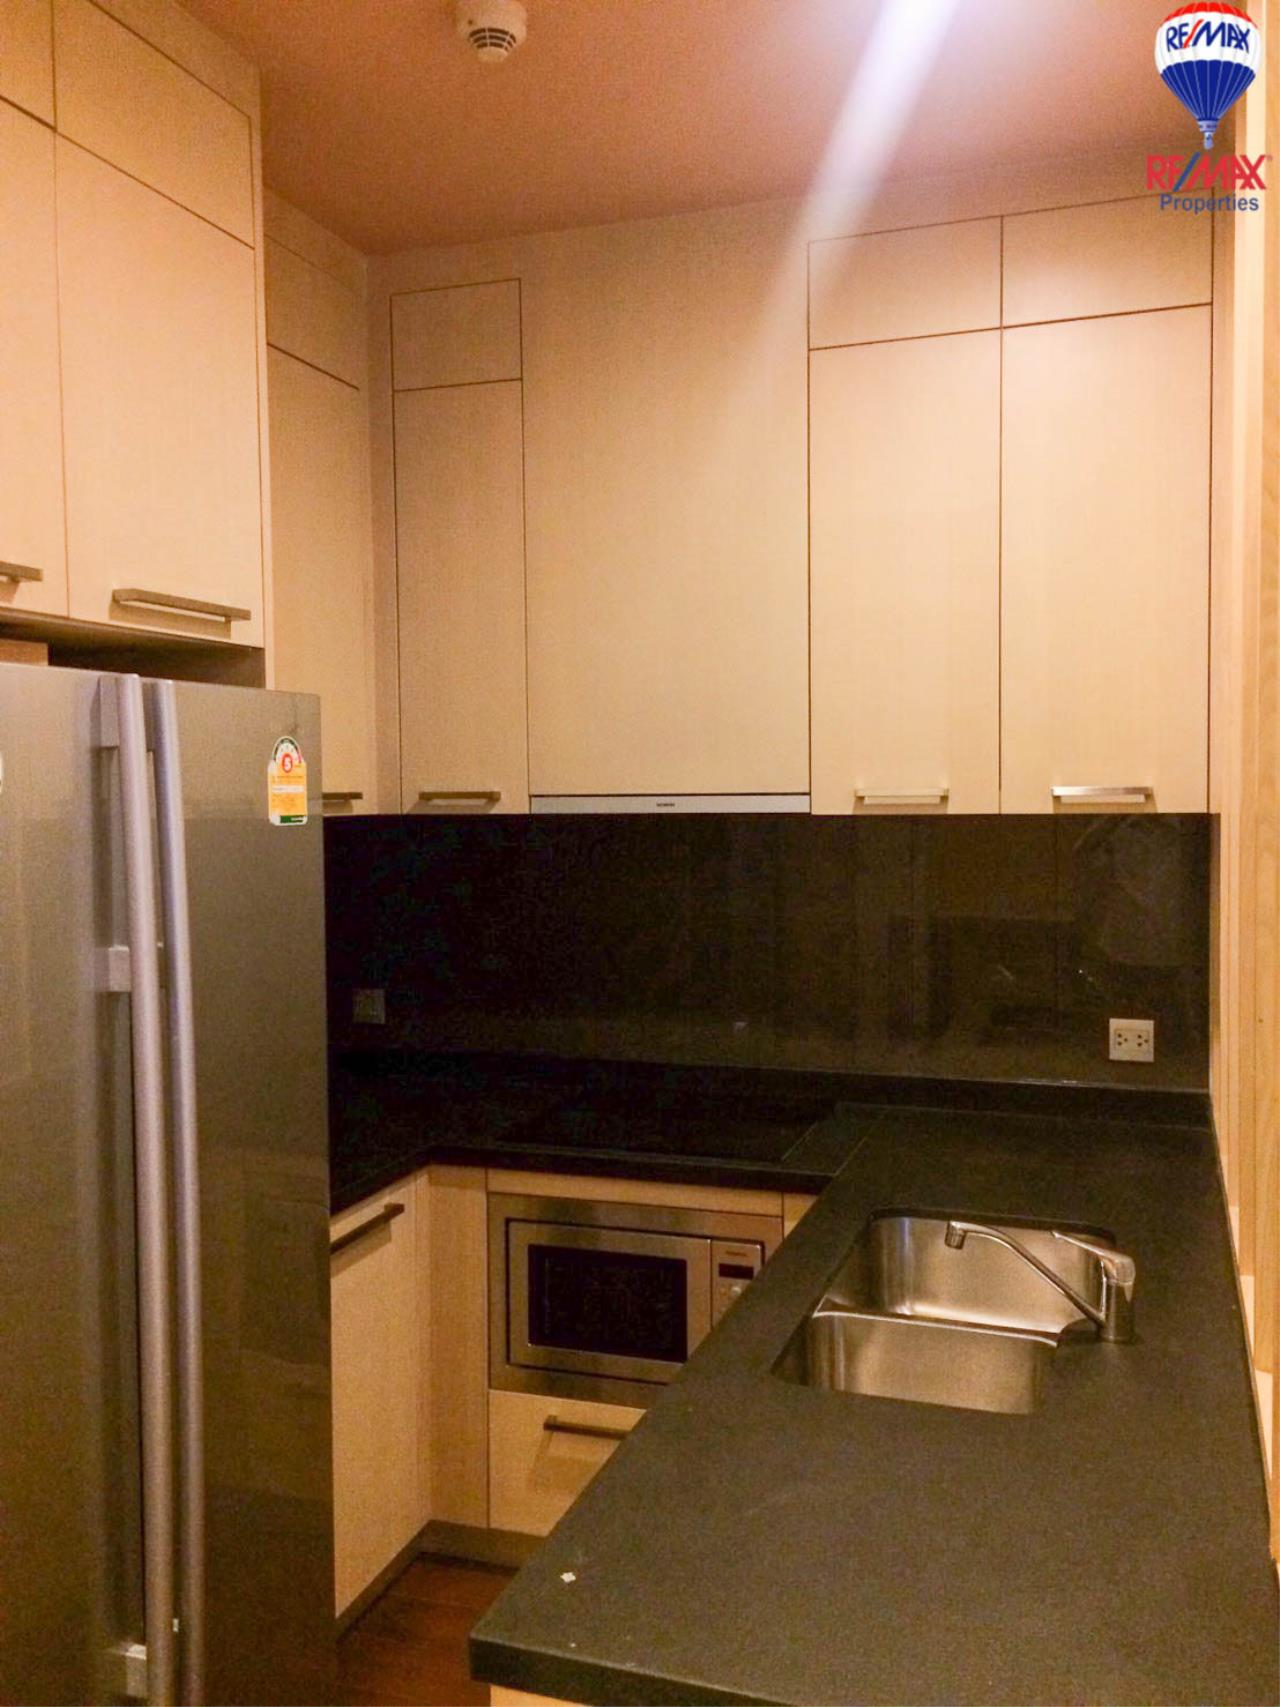 RE/MAX Properties Agency's 2 Bedrooms 86 Sq.M. for rent in Quattro by Sansiri 9